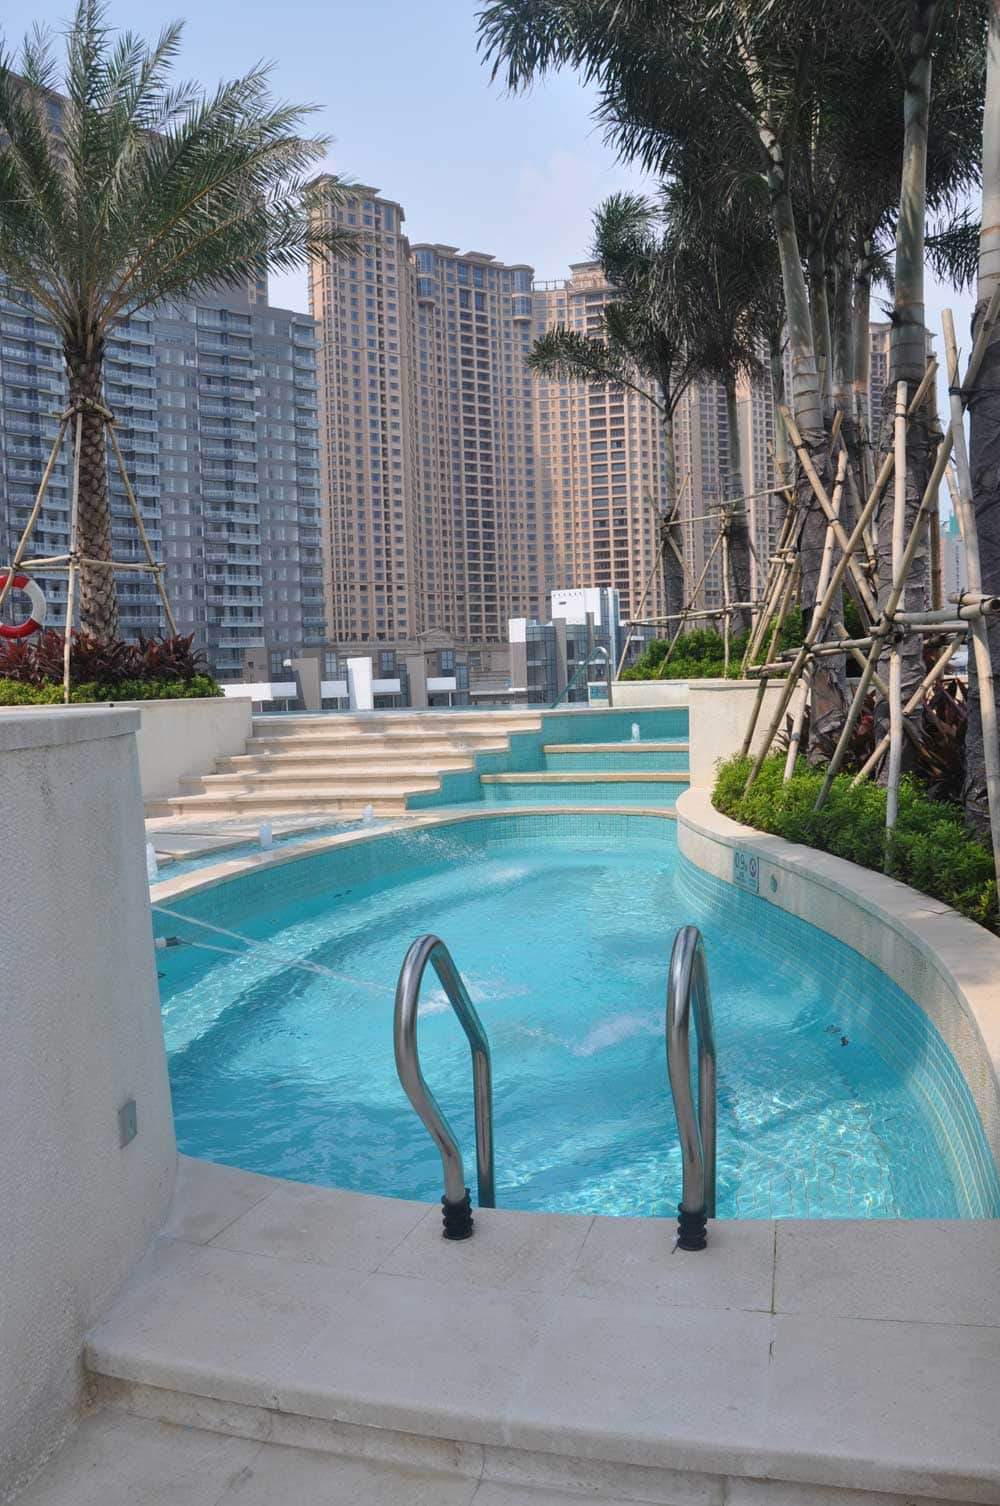 Small outside pool at Macau Roosevelt Hotel